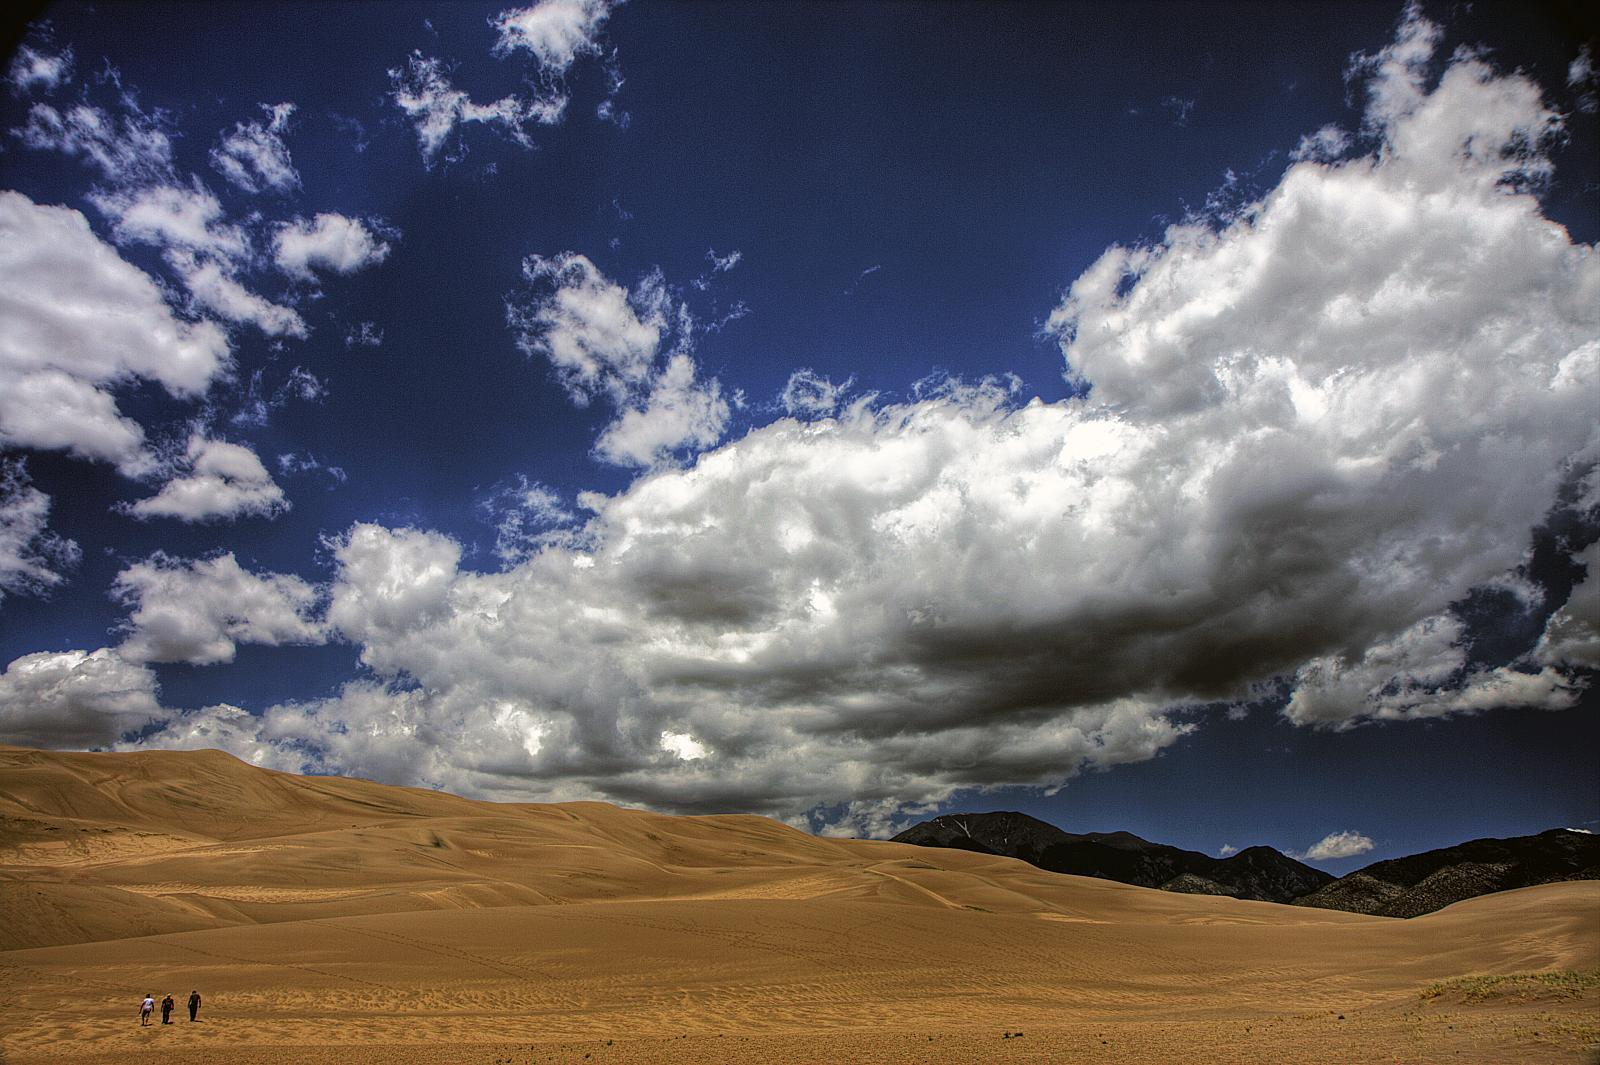 Clouds above sand dunes